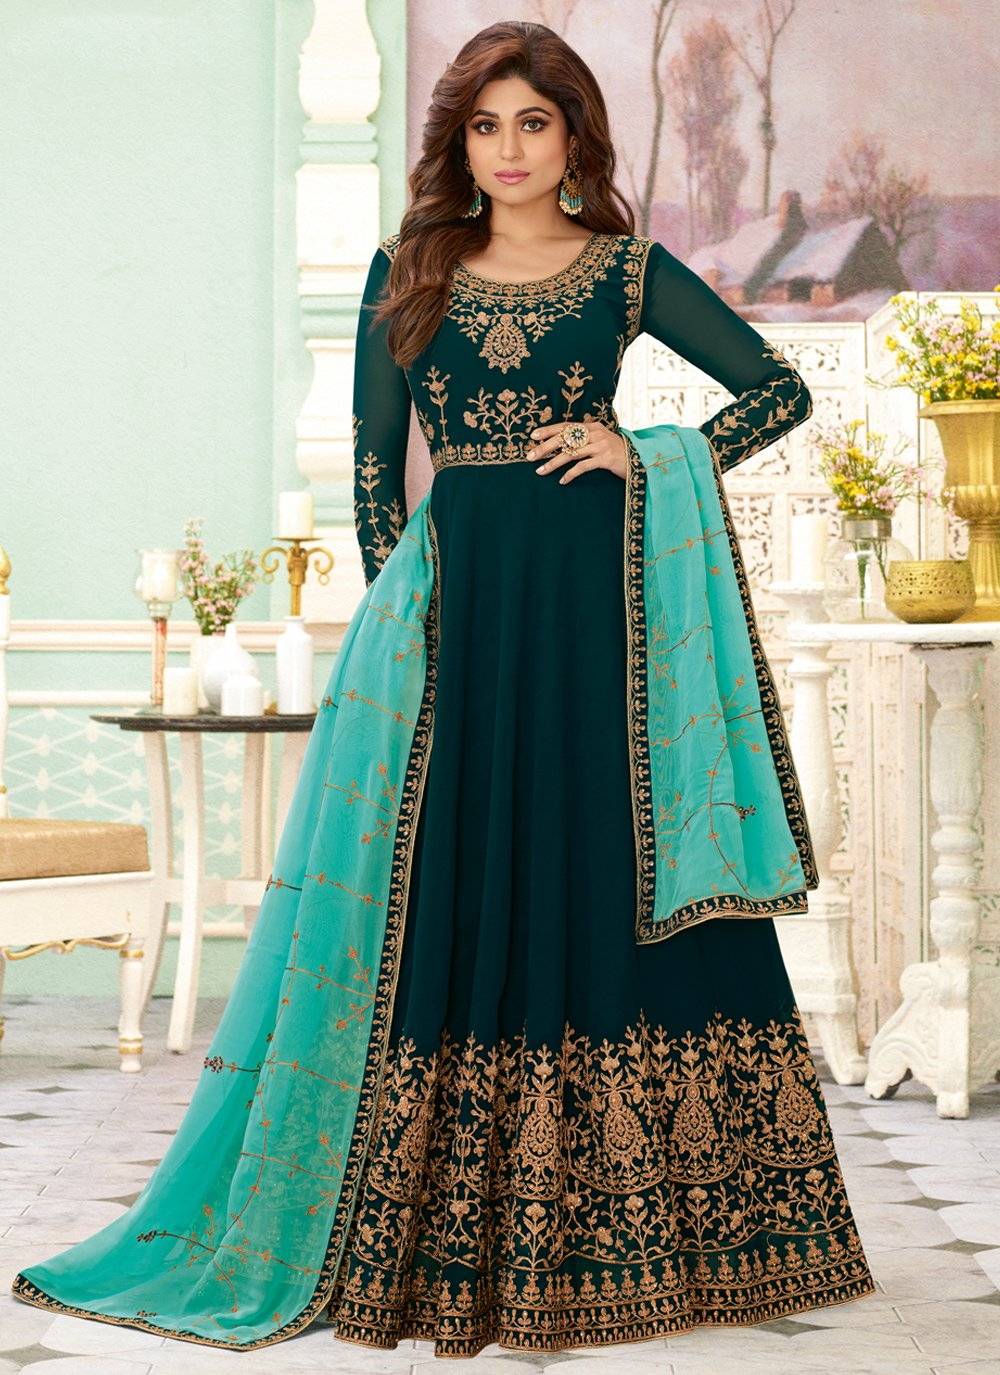 Georgette Salwar Suit in Green